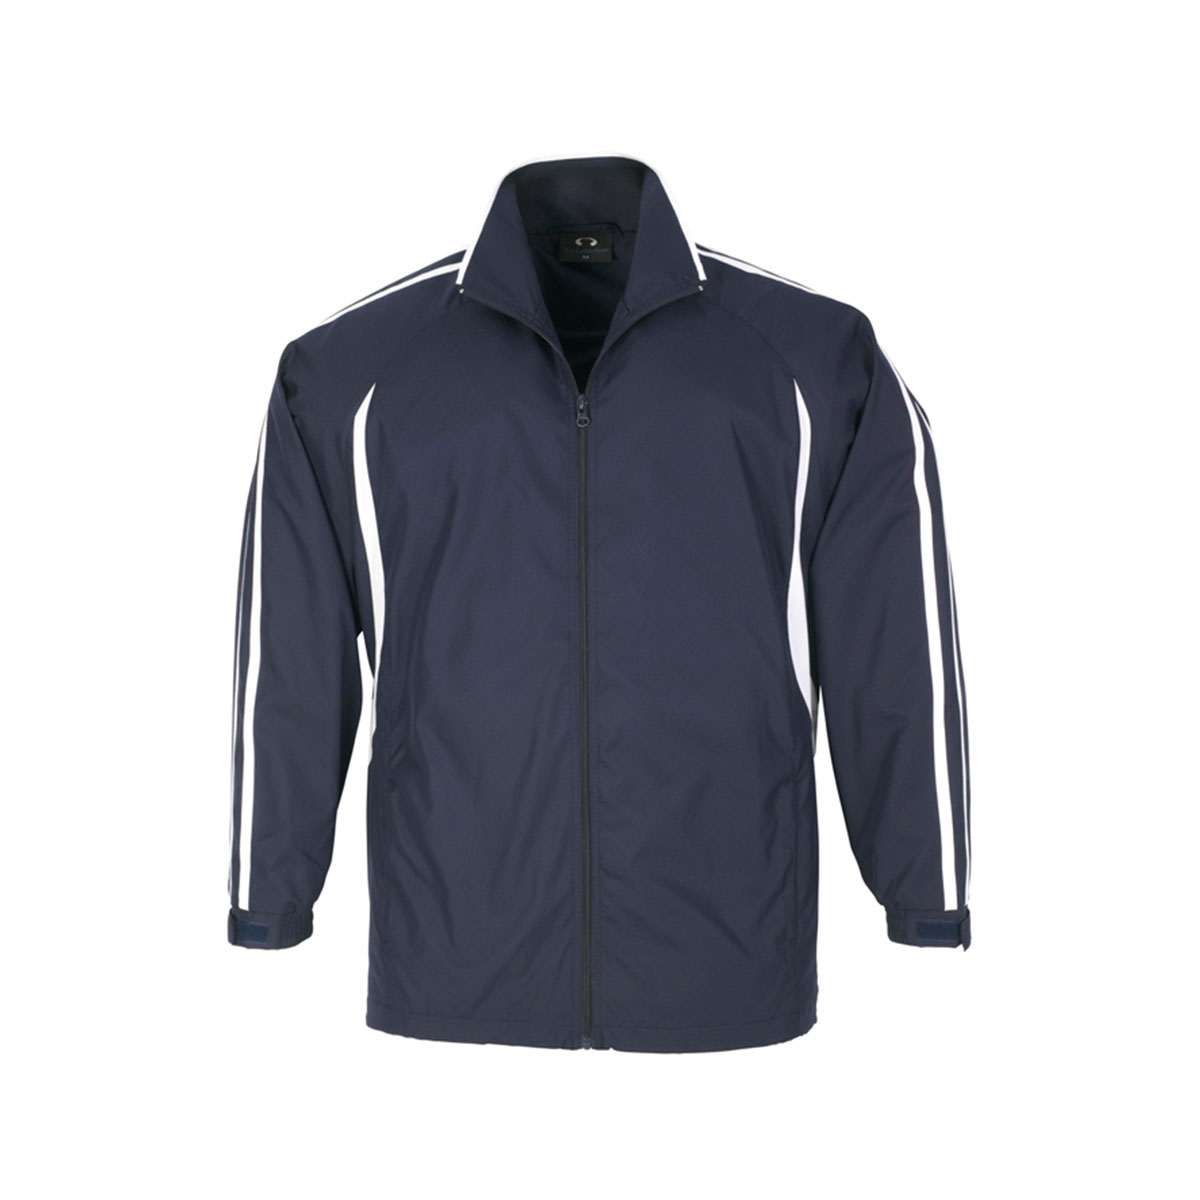 Adults Flash Track Top-Navy / White